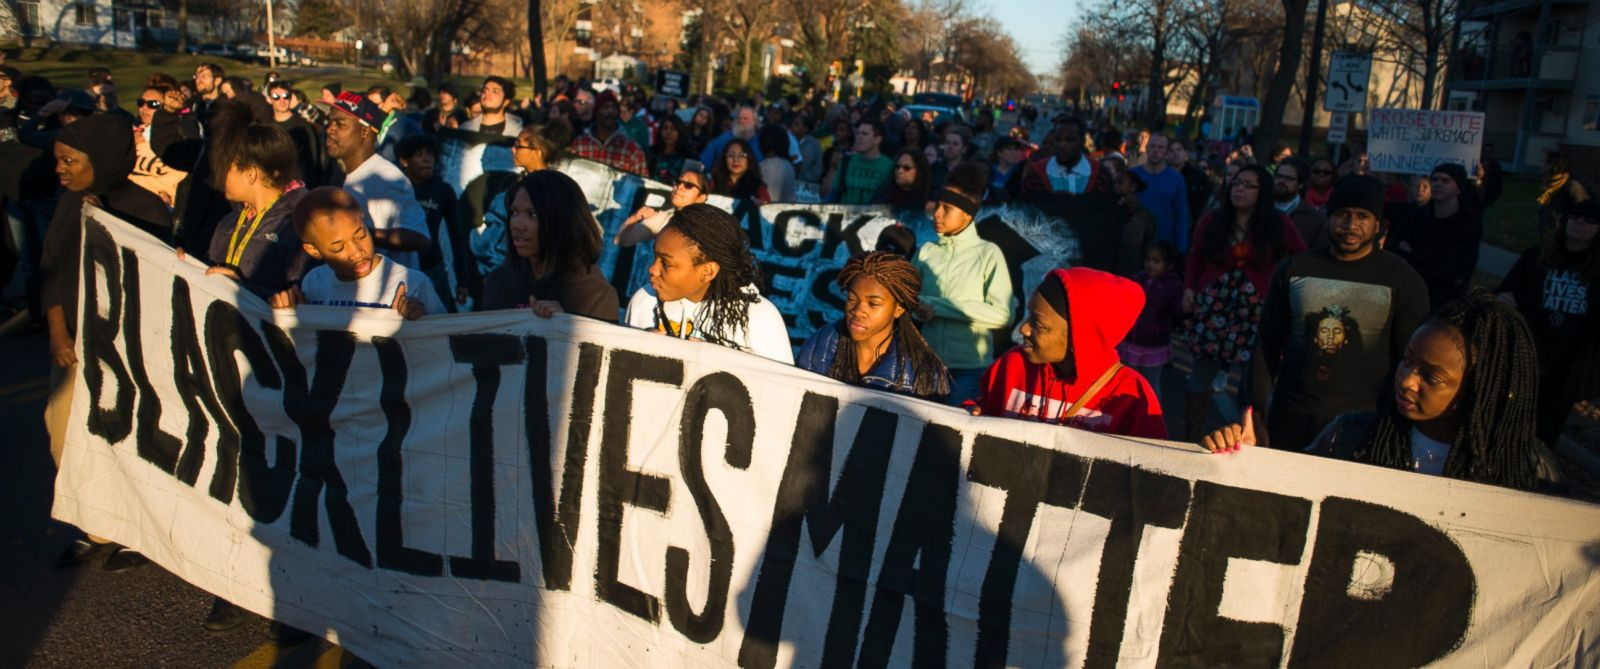 Black Lives Matter Wide Banner